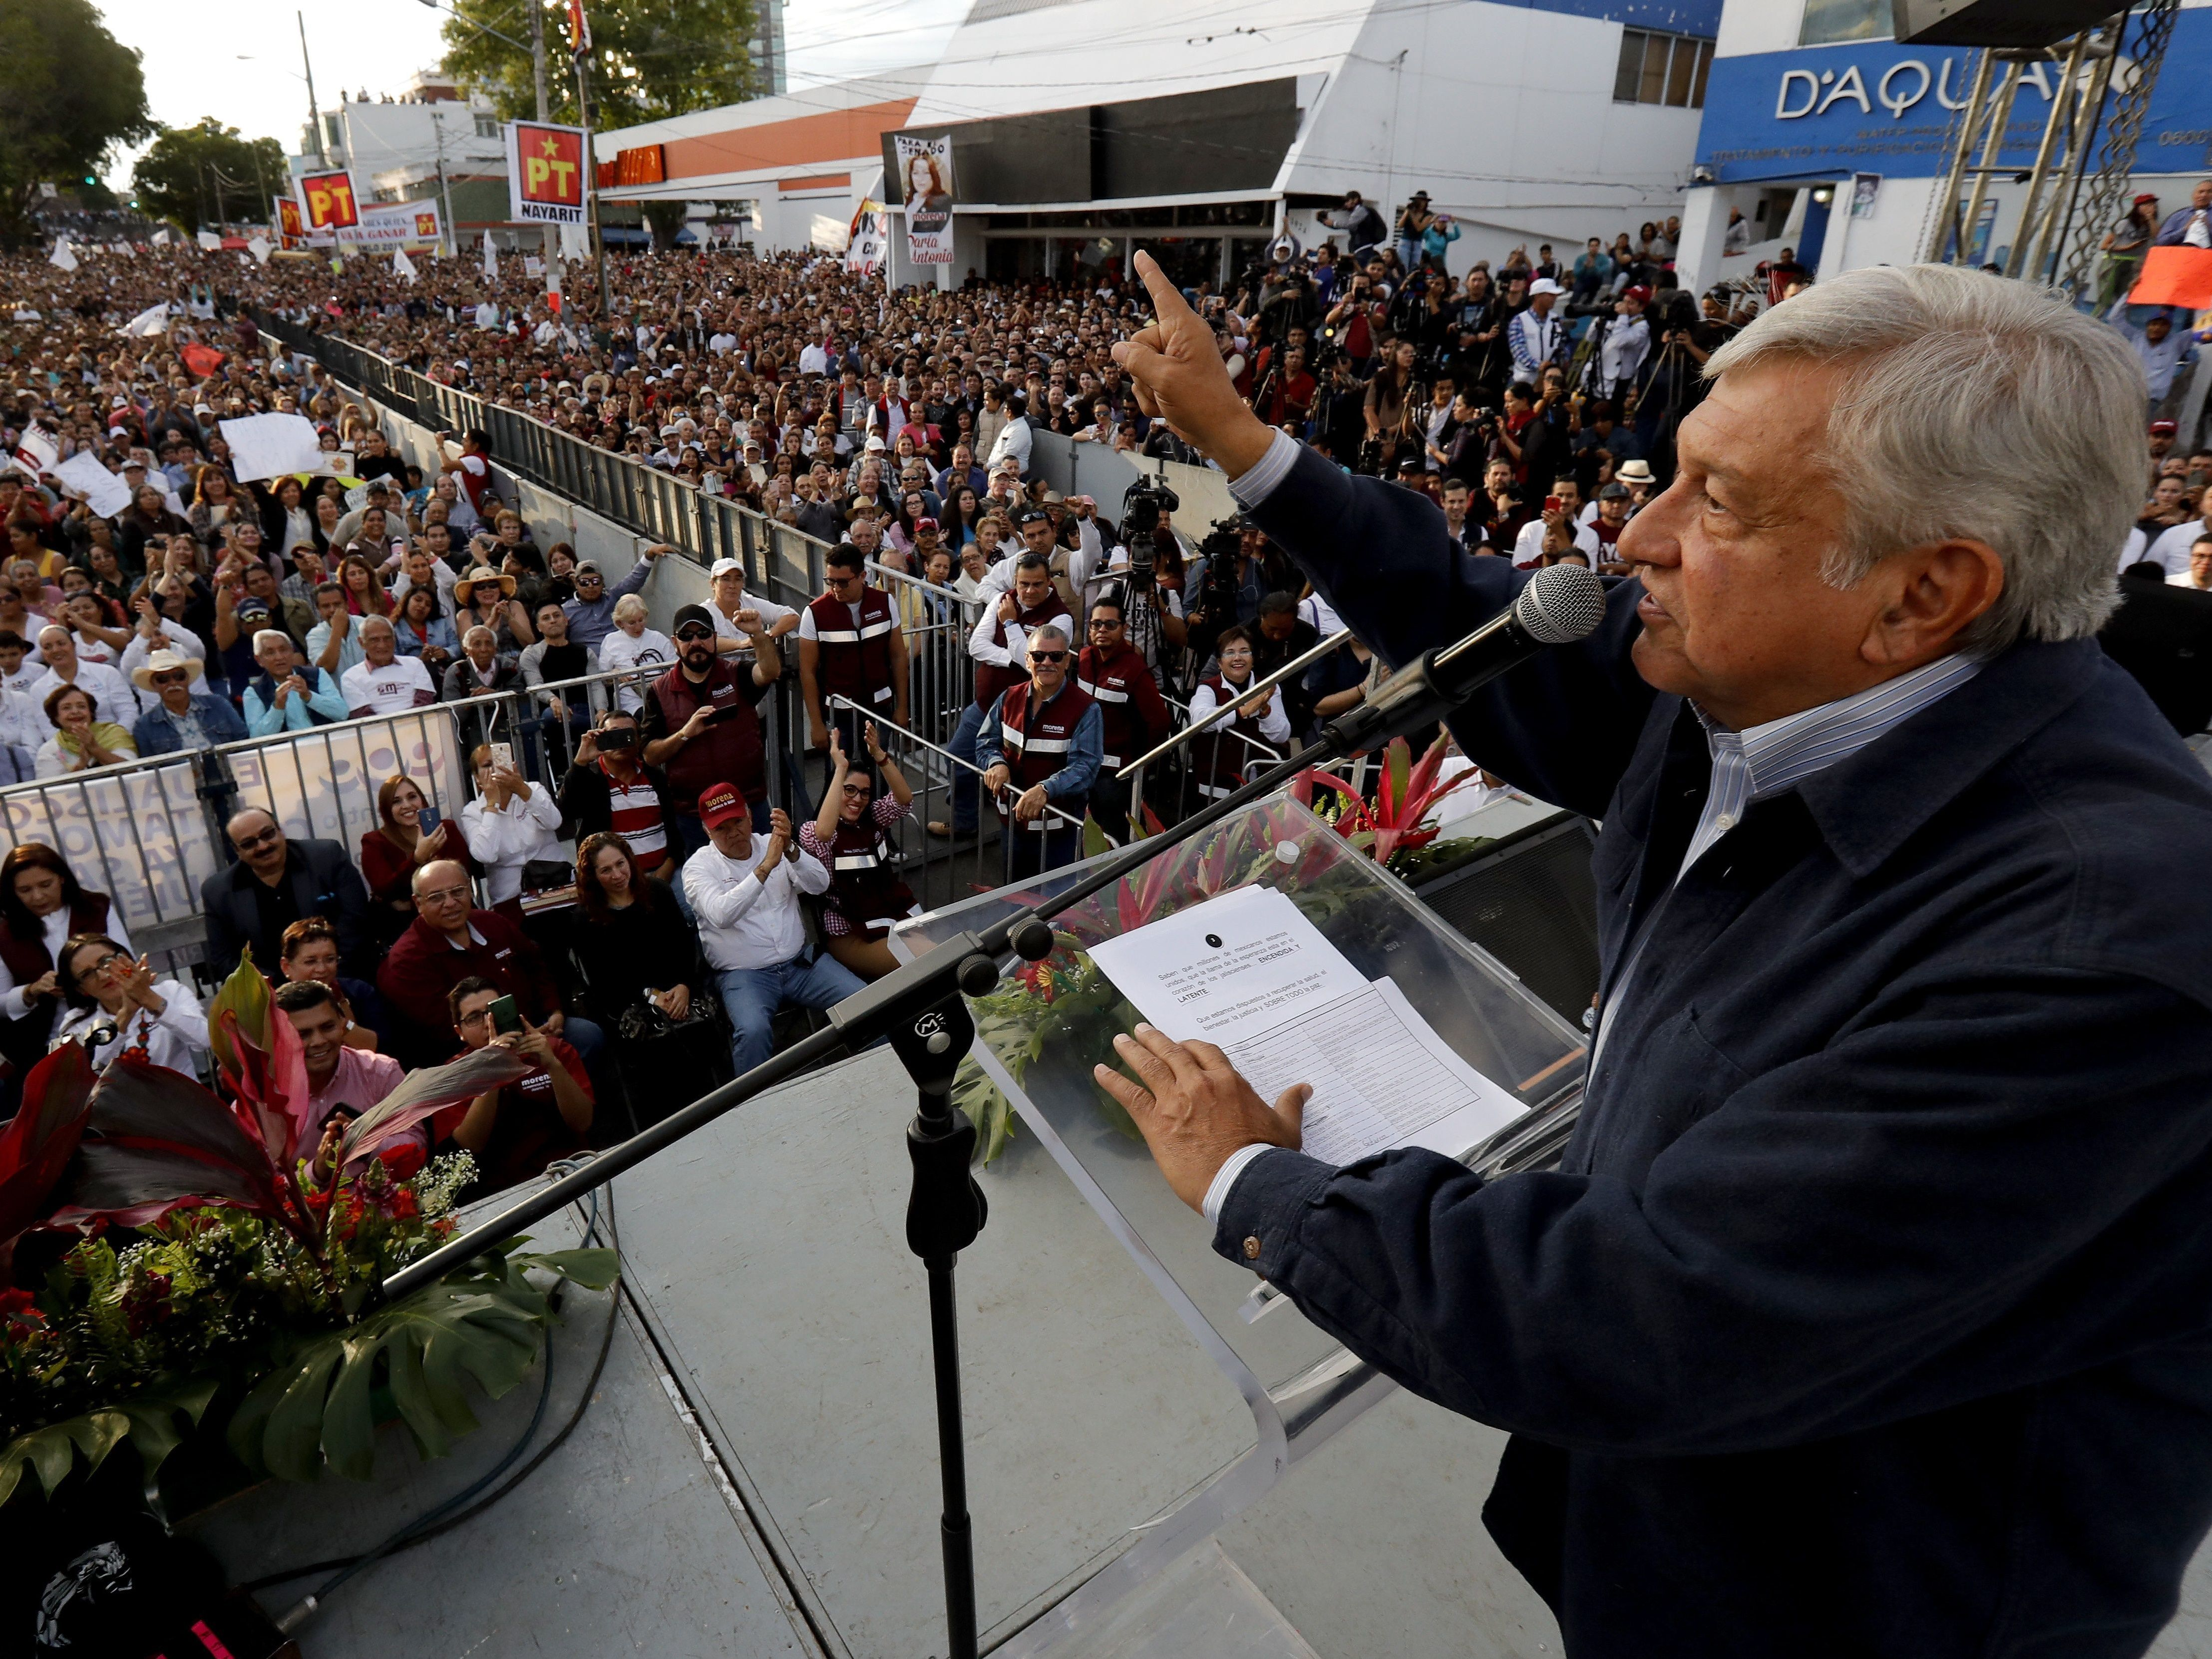 Presidential candidate and front-runner Andres Manuel Lopez Obrador delivers a speech during a rally in Guadalajara on Feb. 11. On Wednesday, he said of Cambridge Analytica: